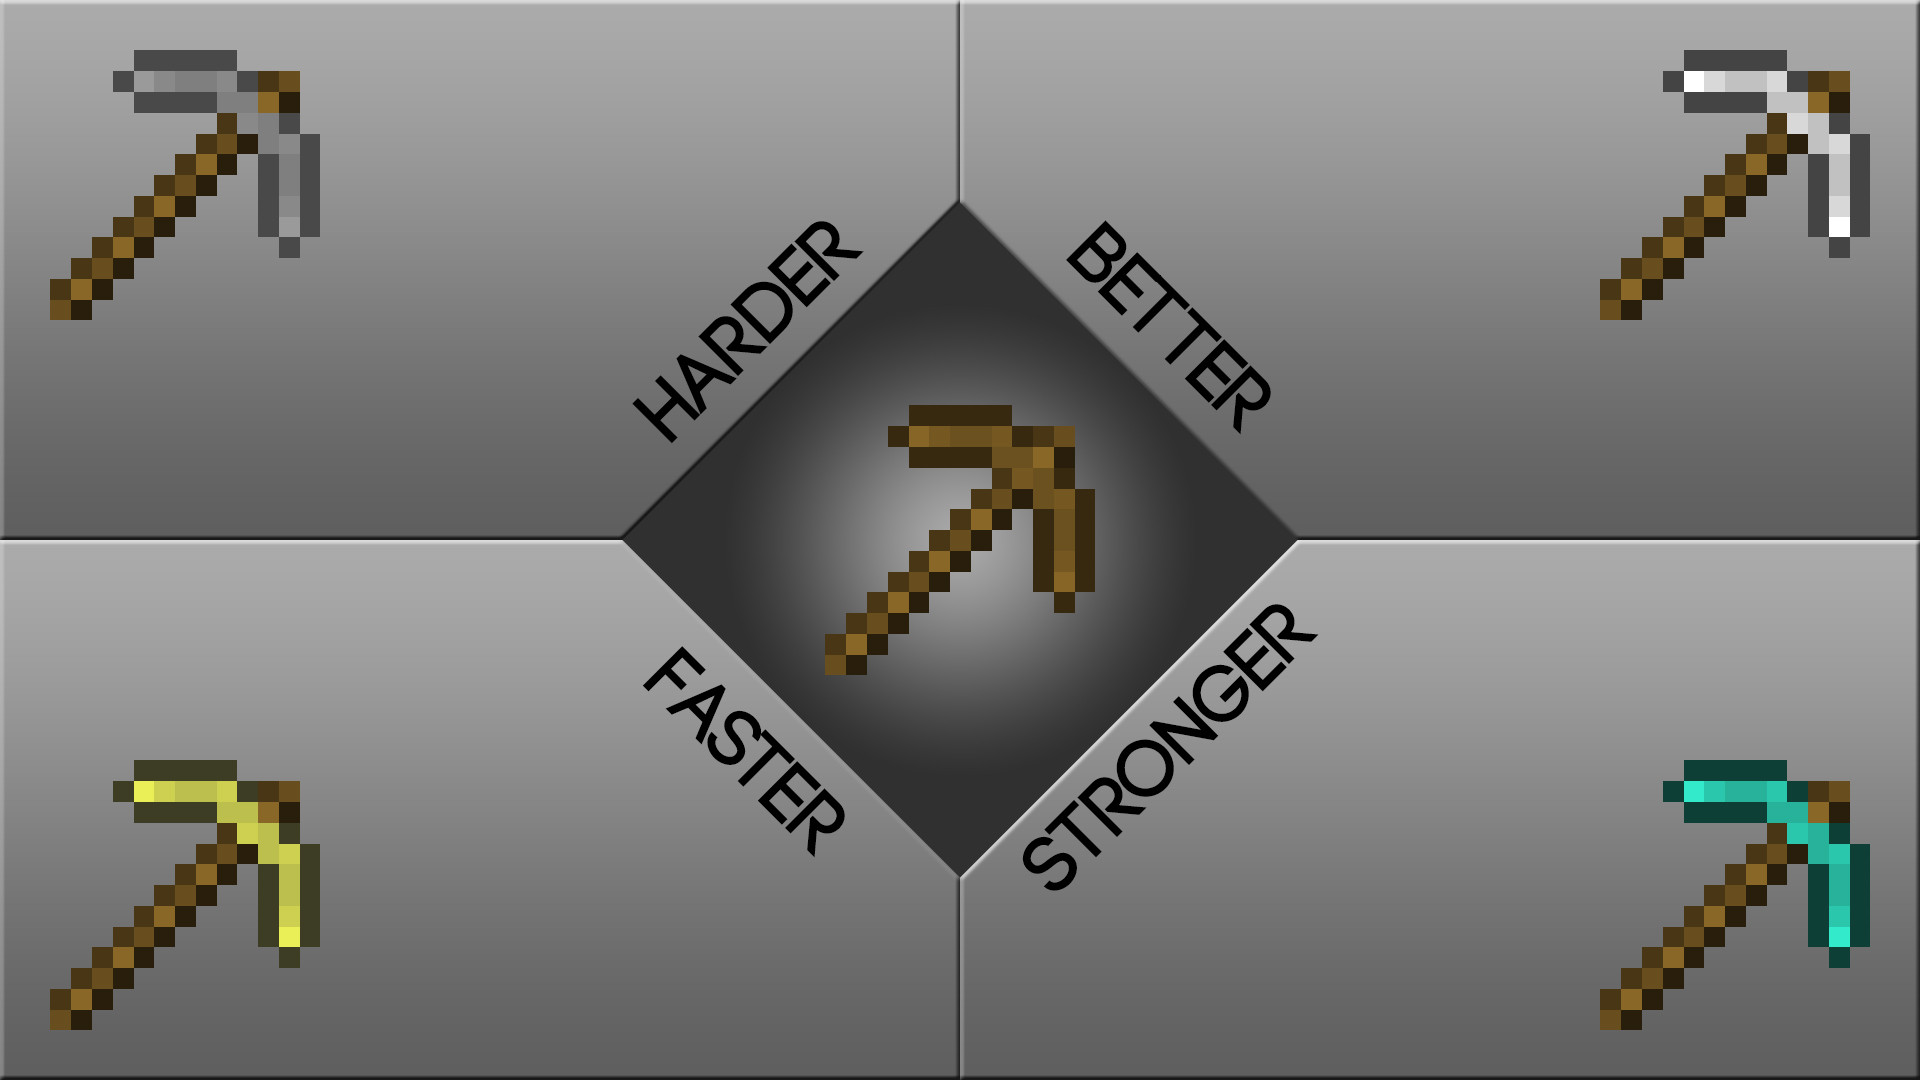 Harder Better Faster Stronger Wallpaper Image